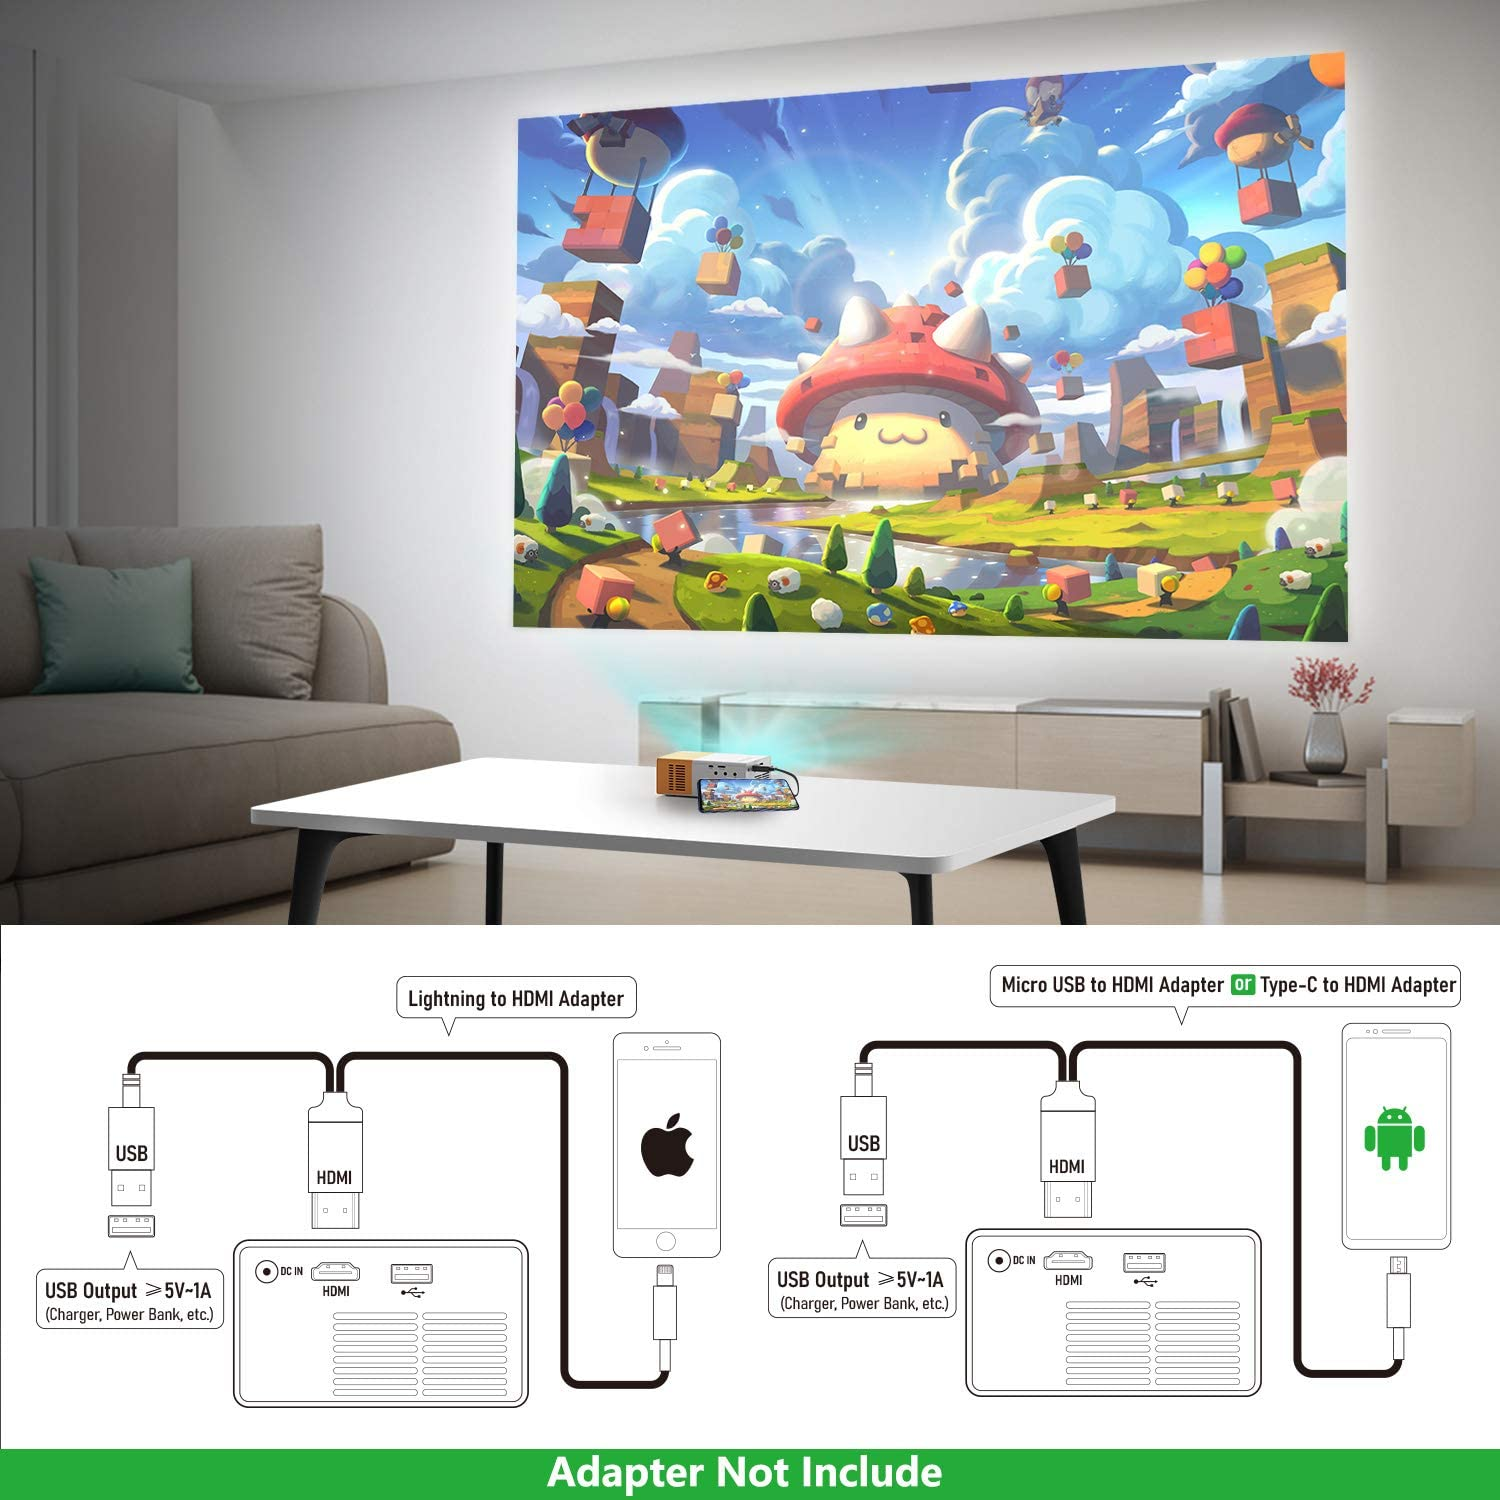 Outdoor Entertainment with HDMI USB TF AV Interfaces and Remote Control PVO Portable Projector Pico Full Color LED Video Projector for Cartoon TV Movie Projector Kids Gift Movie Mini Projector